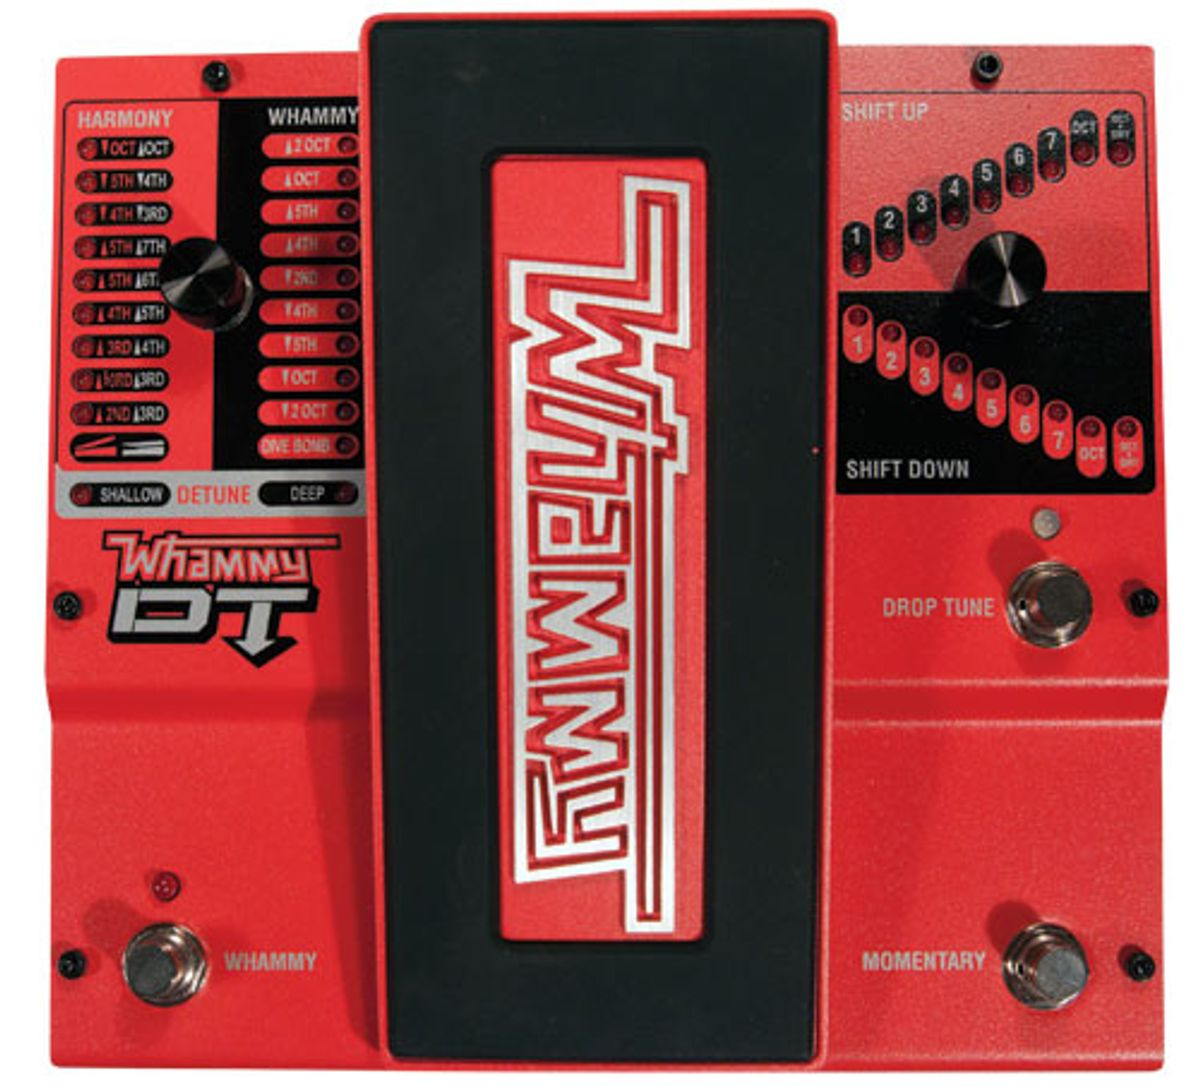 DigiTech Whammy DT Pedal Review